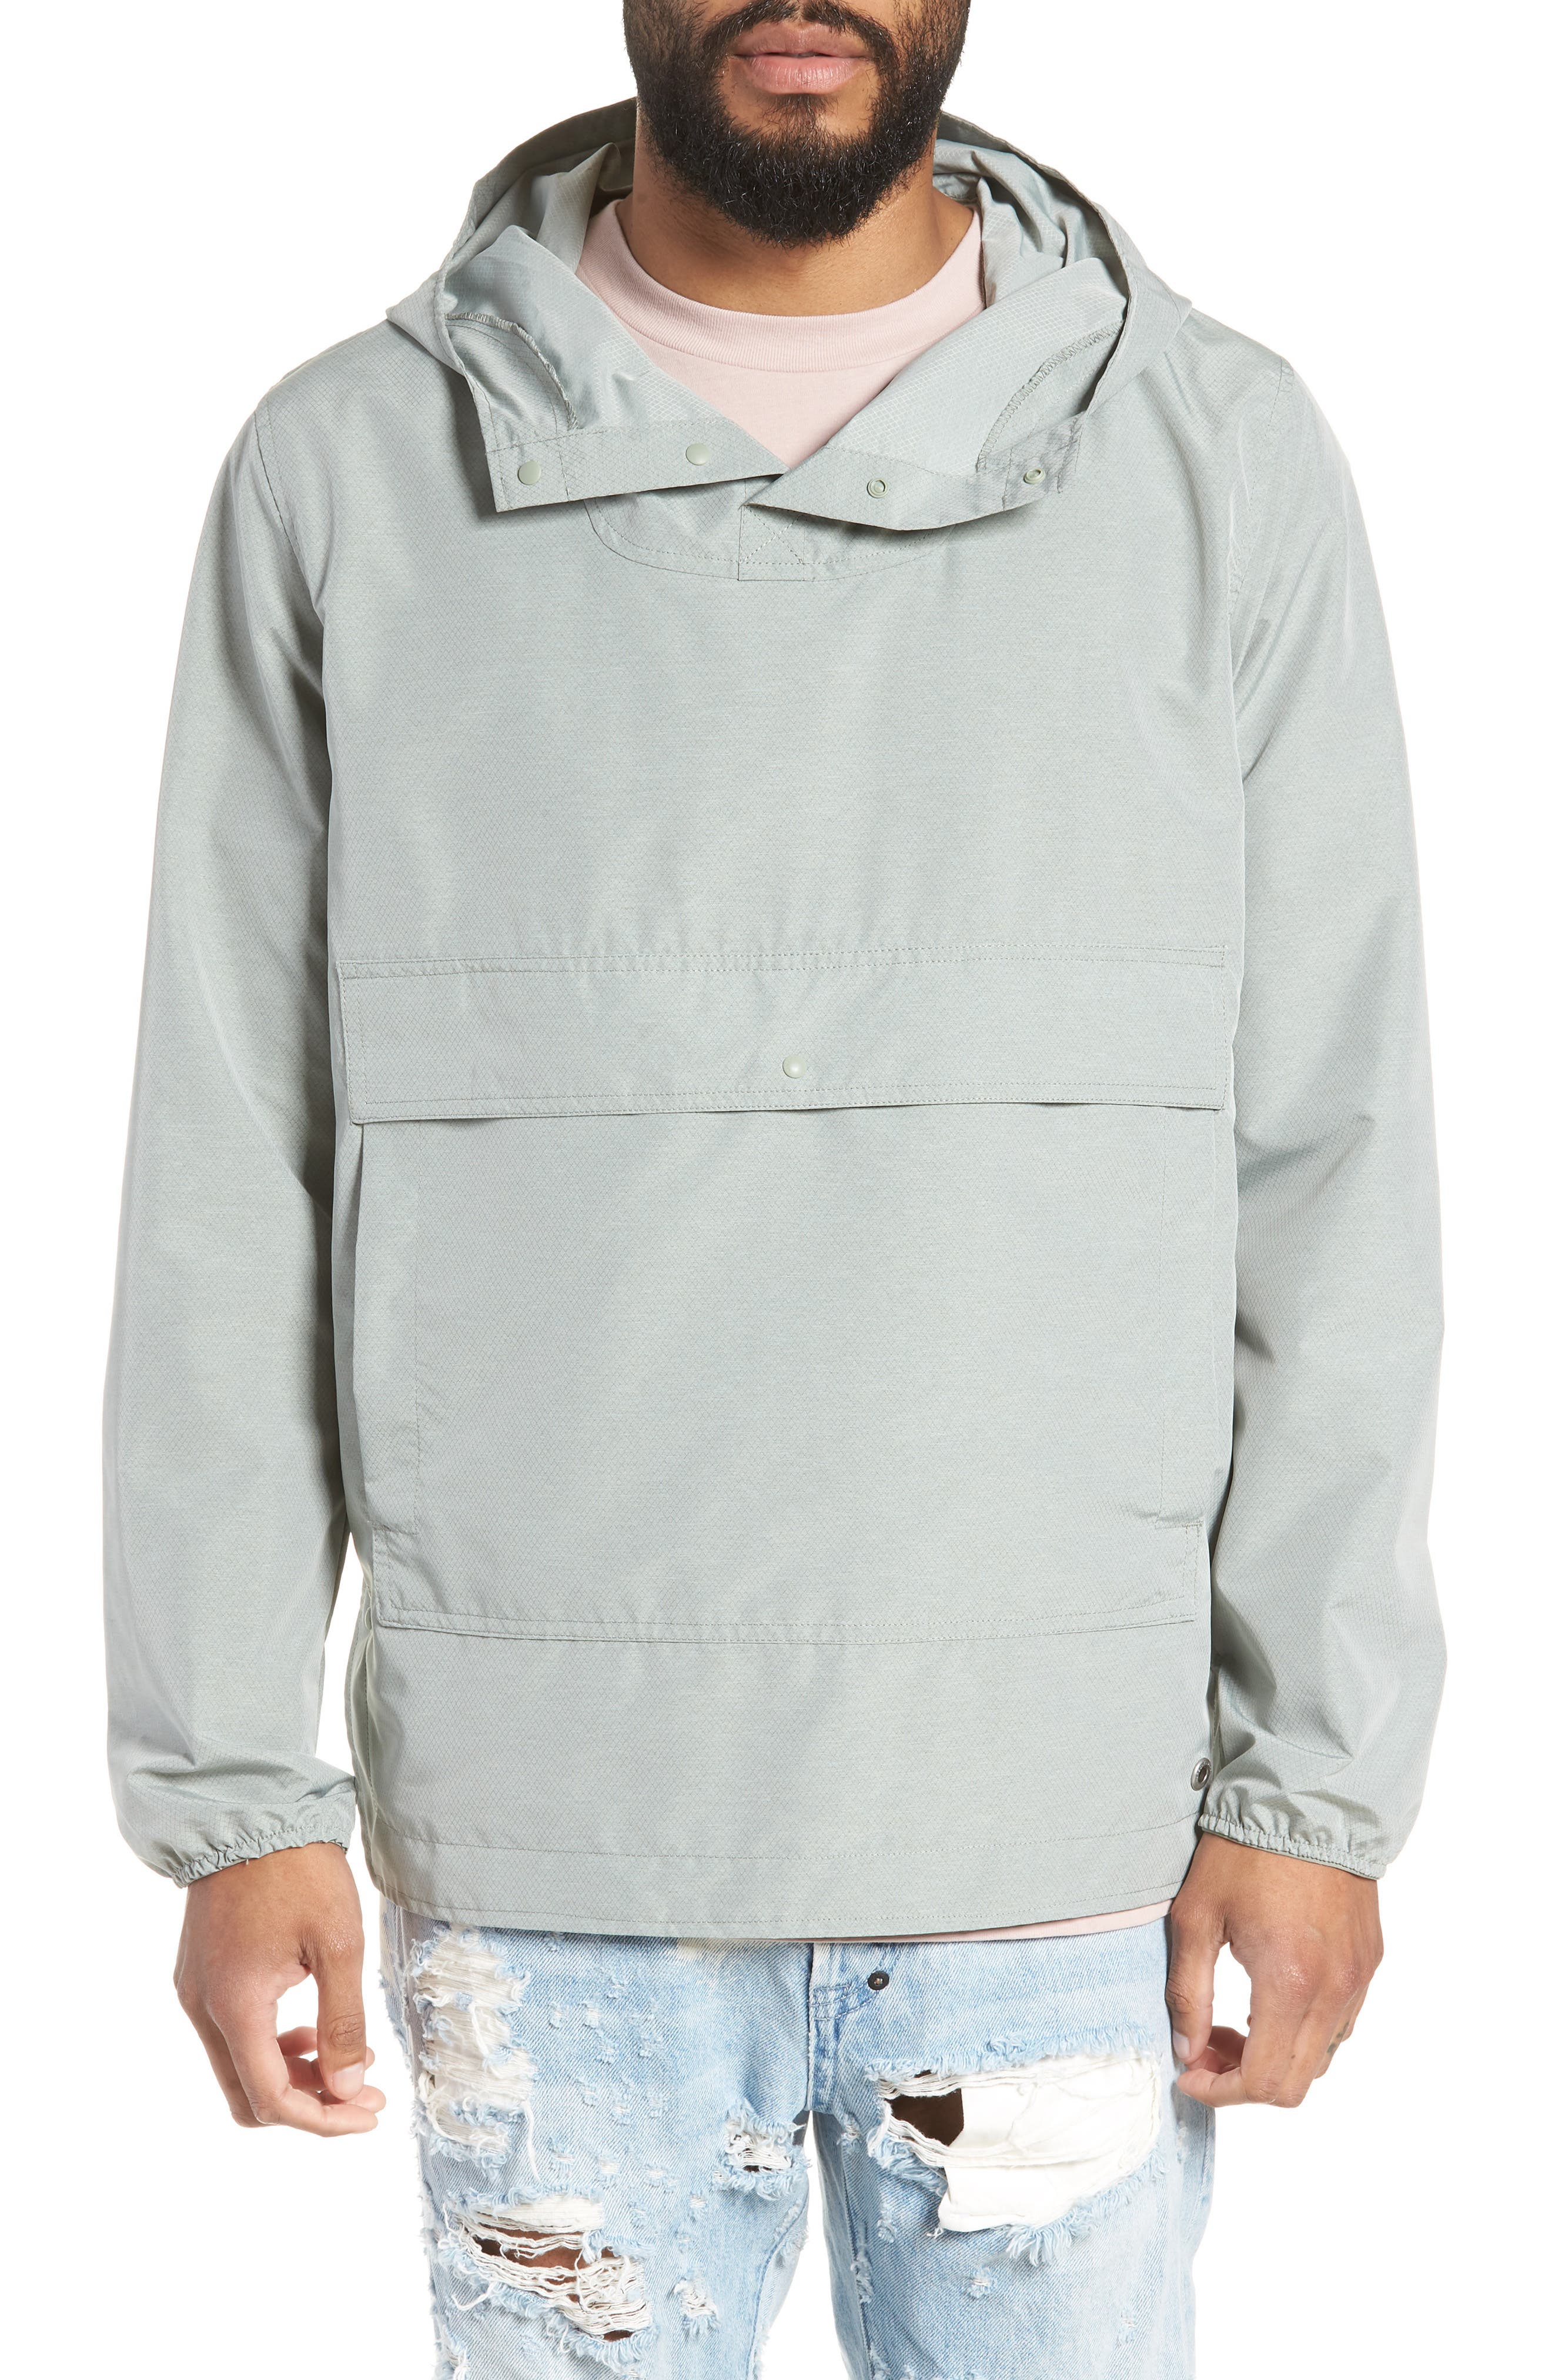 Voyage Anorak,                             Main thumbnail 1, color,                             Shadow Crosshatch / Black